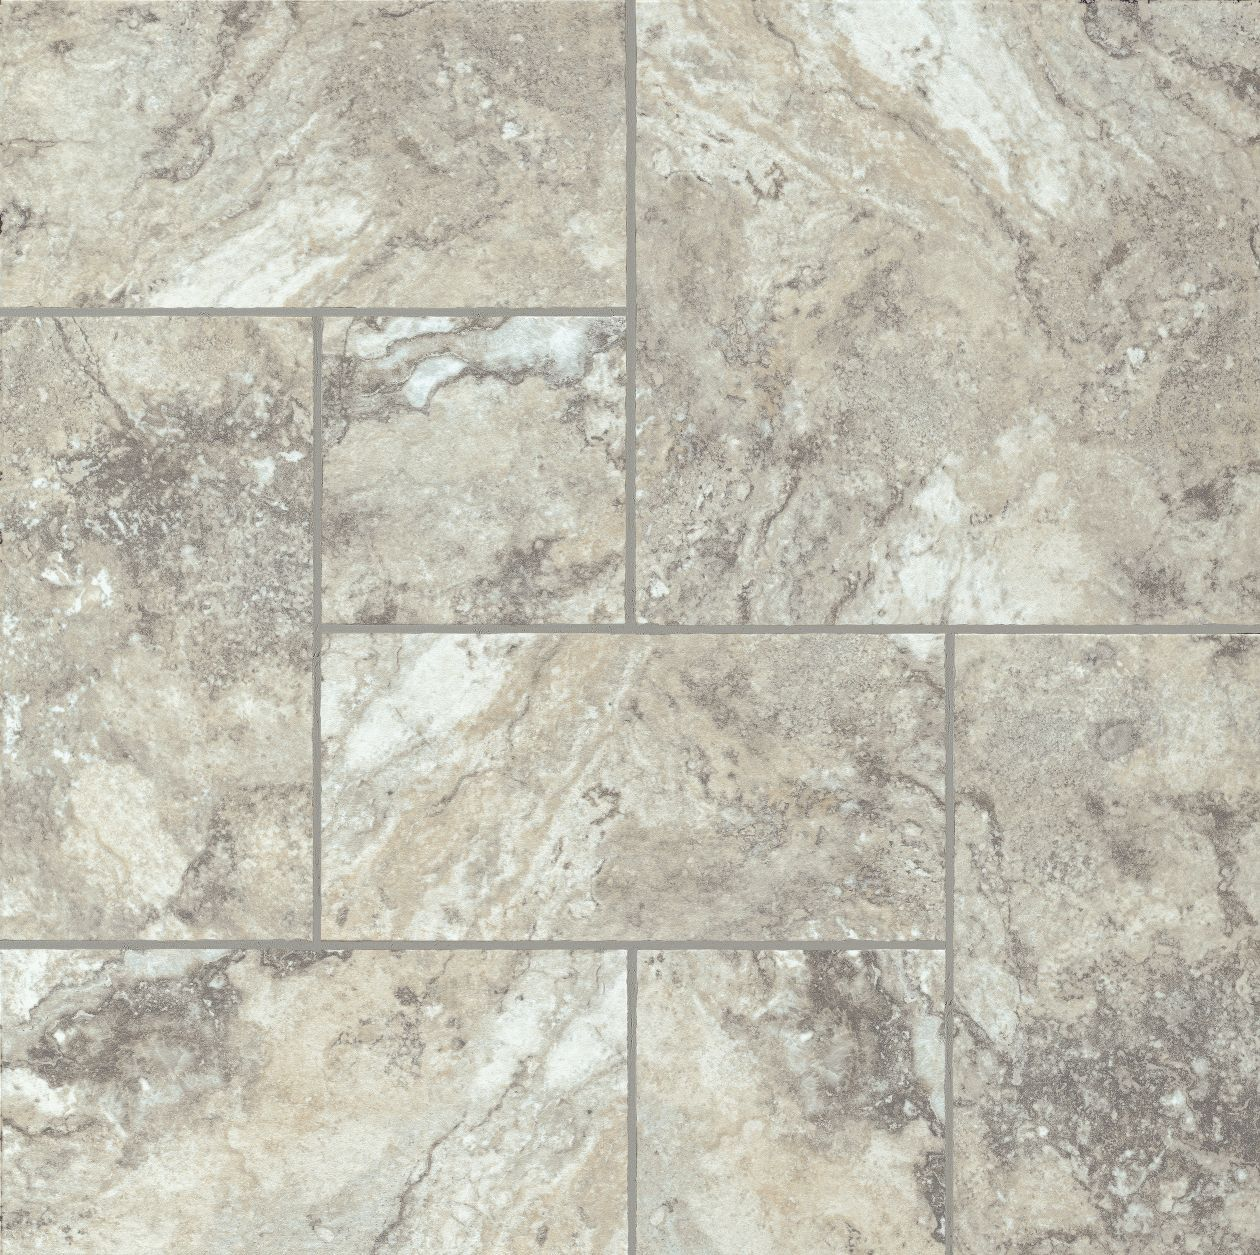 learn more about armstrong genova travertine nickel and order a